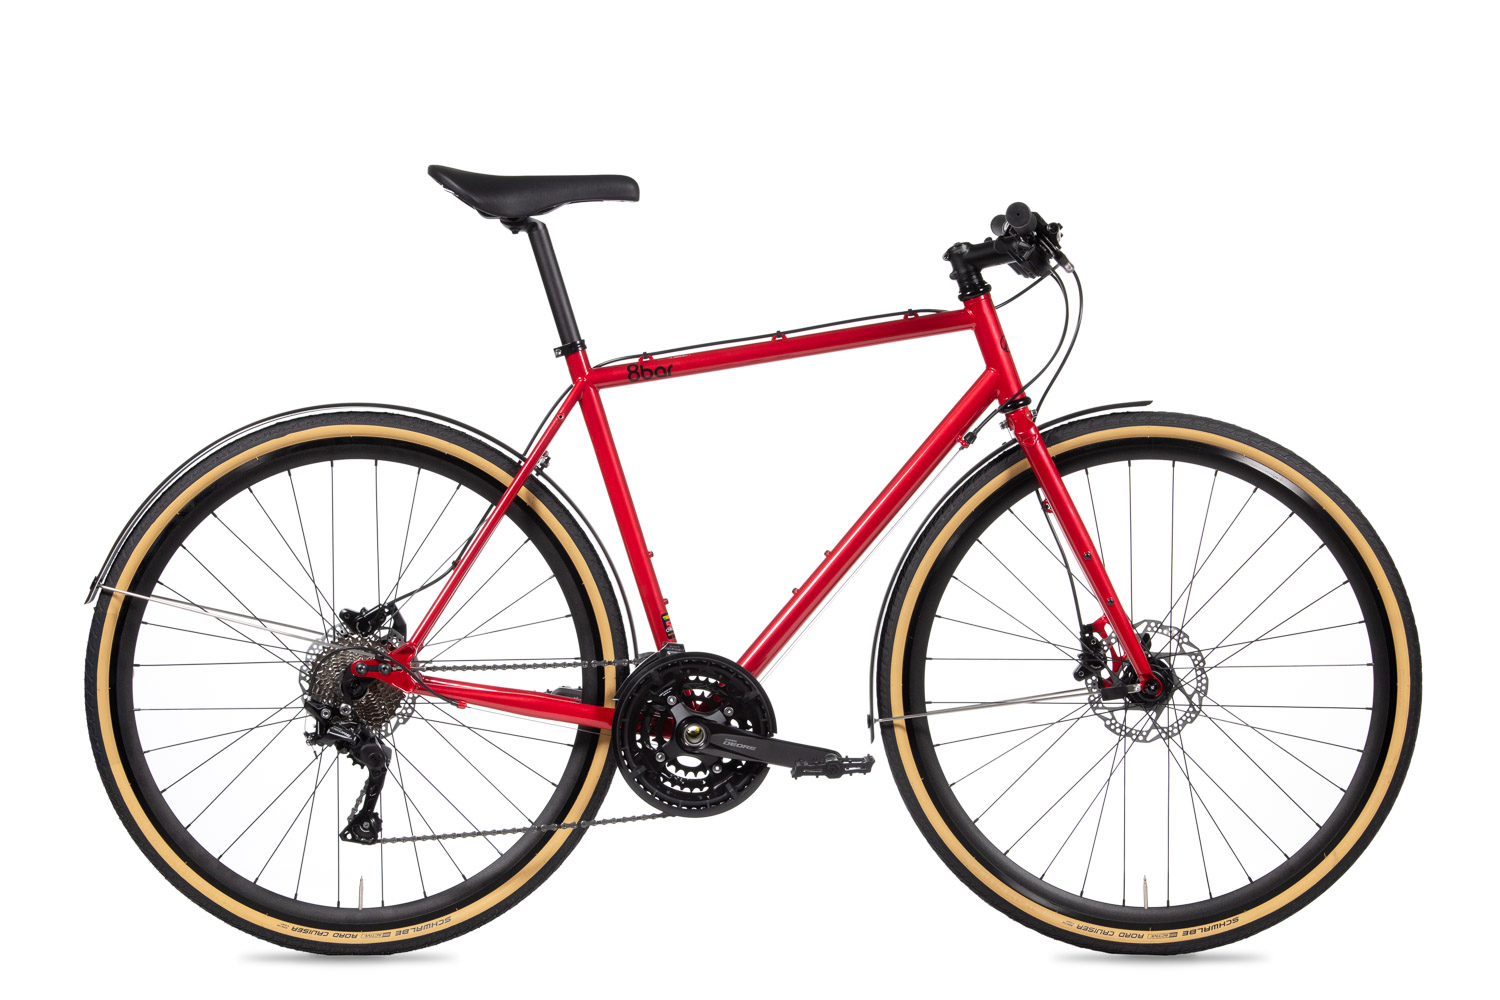 8bar complete bike mitte steel red trekking comp studio 1 - MITTE STEEL Trekking - Comp